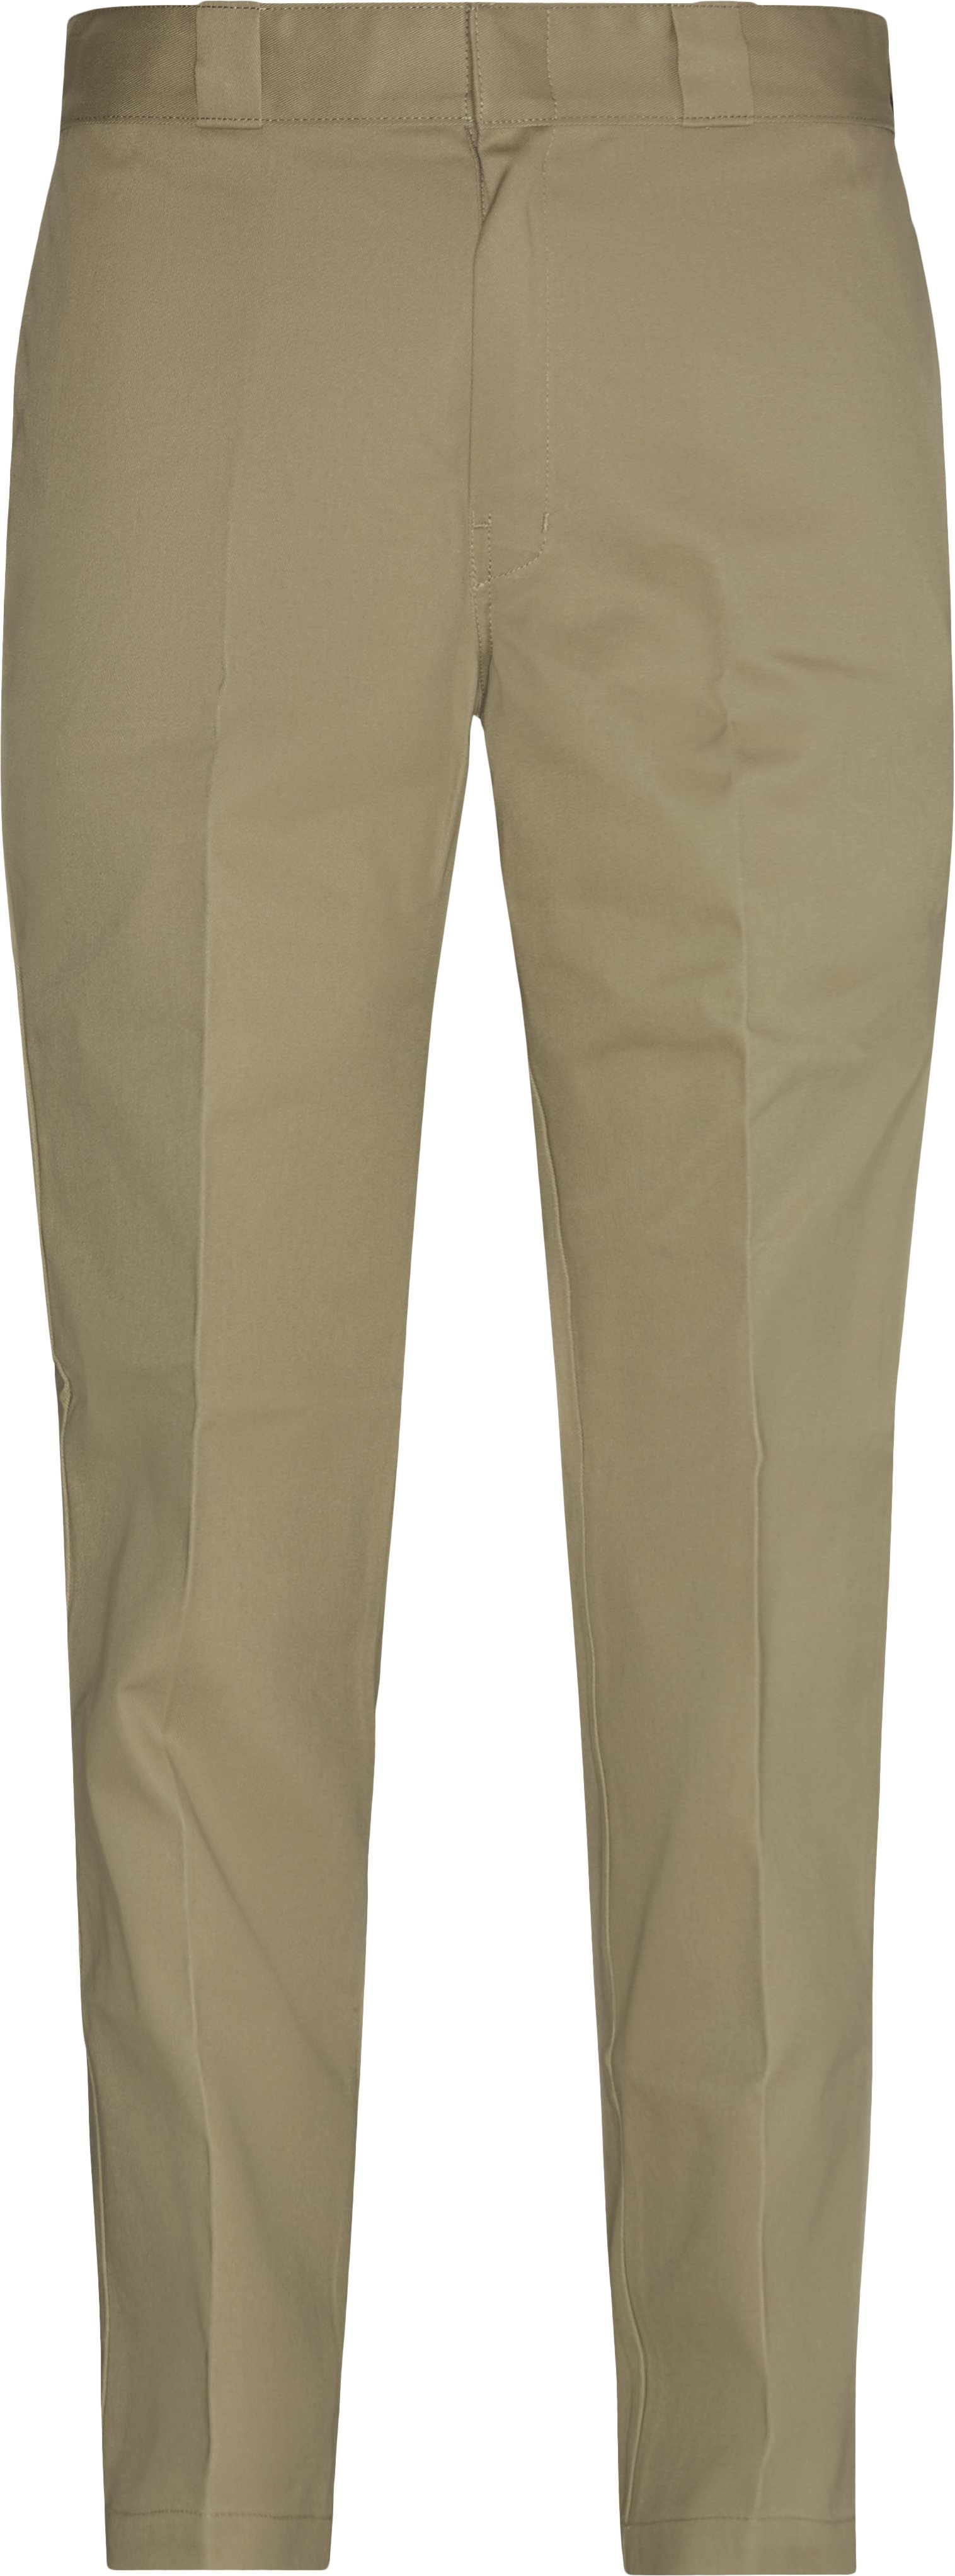 874 Work Pant - Bukser - Relaxed fit - Sand